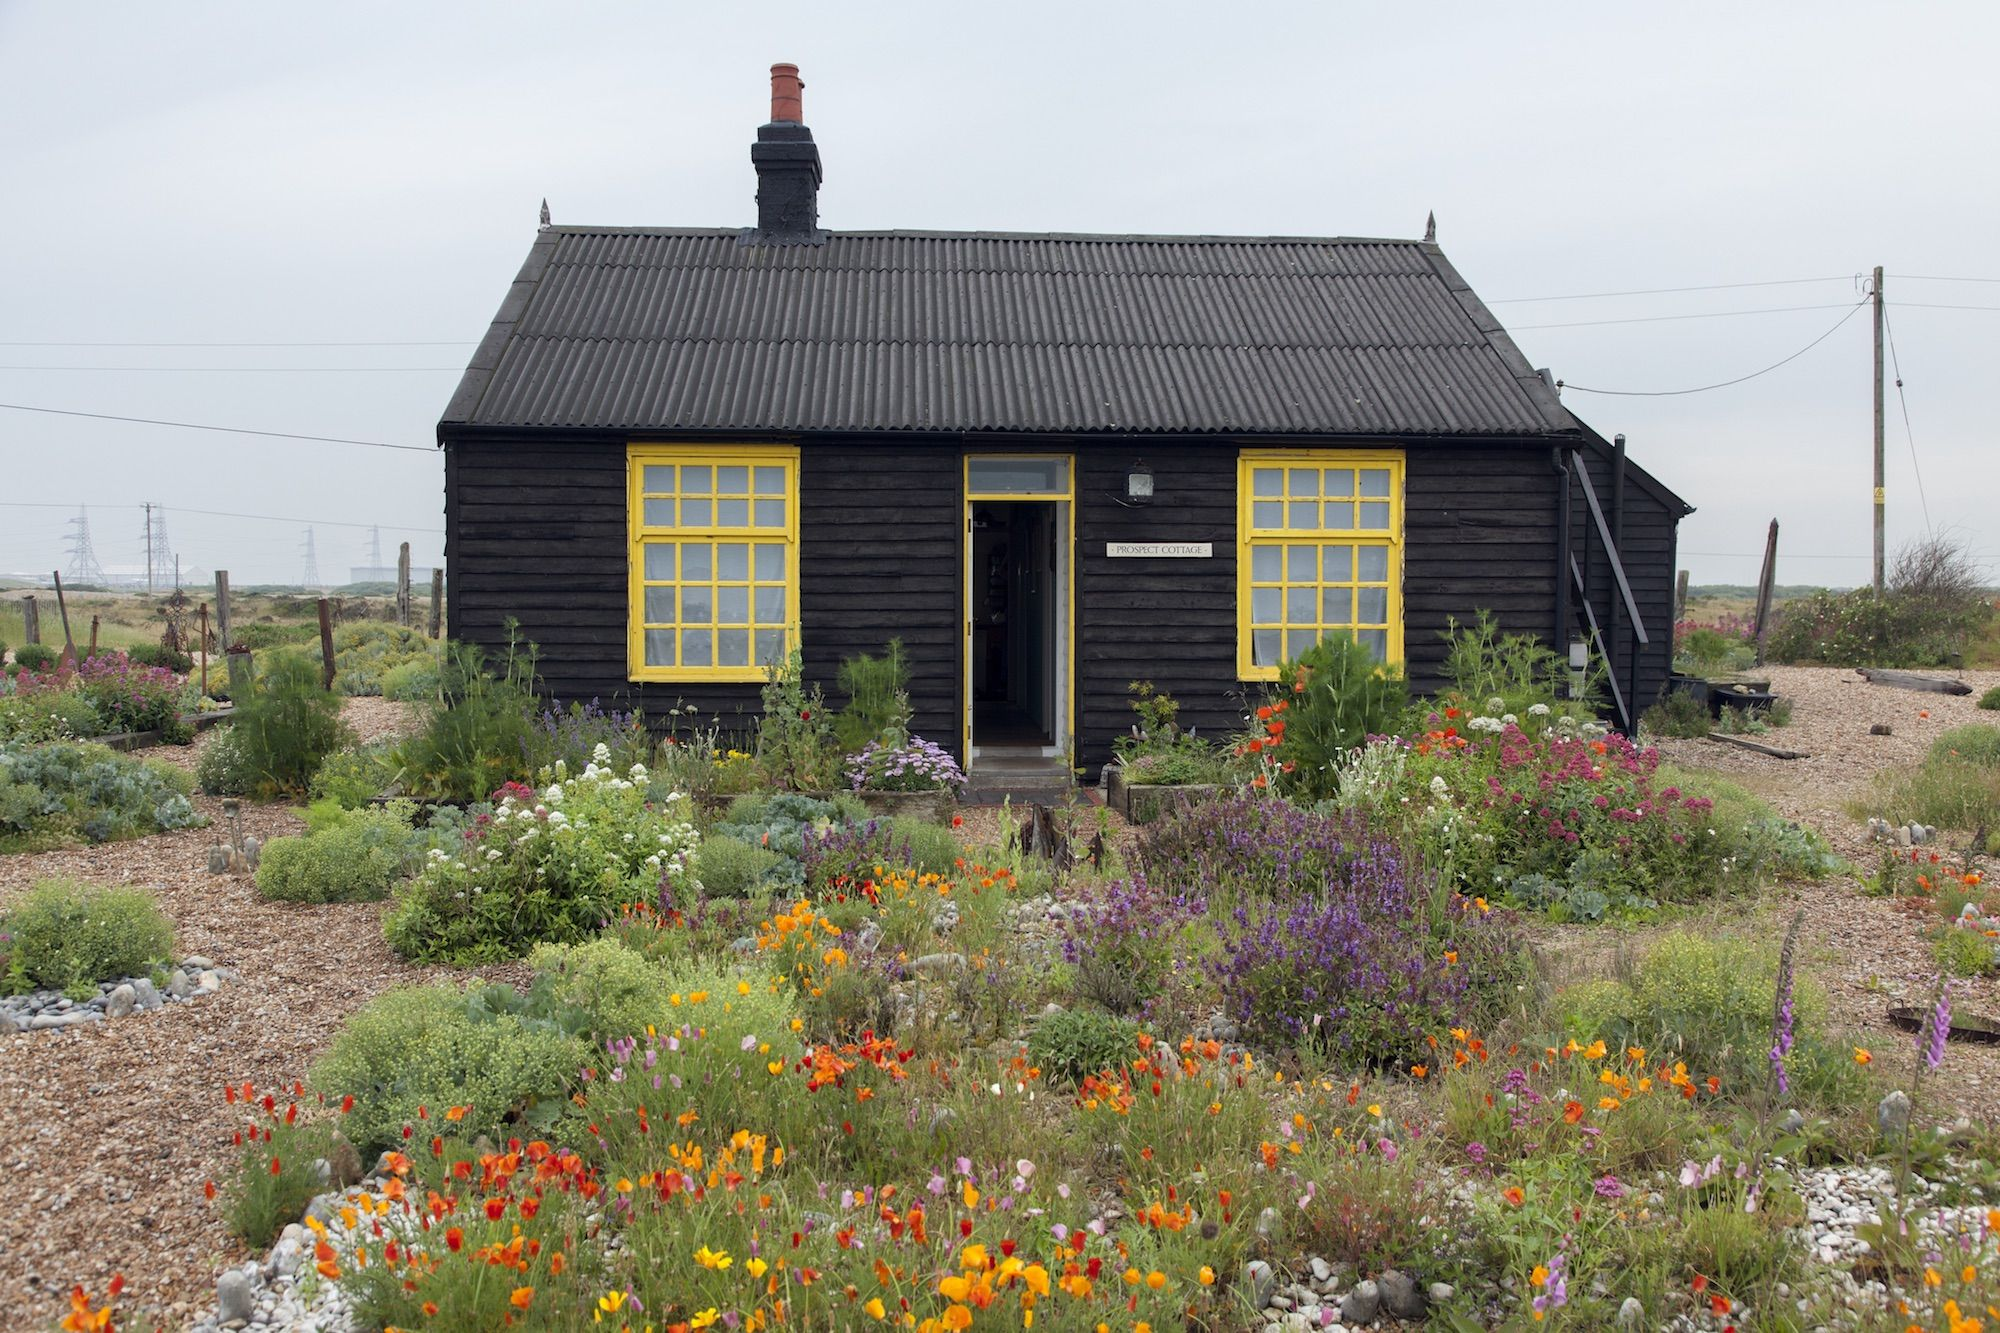 £3.5 million is needed to save Derek Jarman's iconic Prospect Cottage and garden